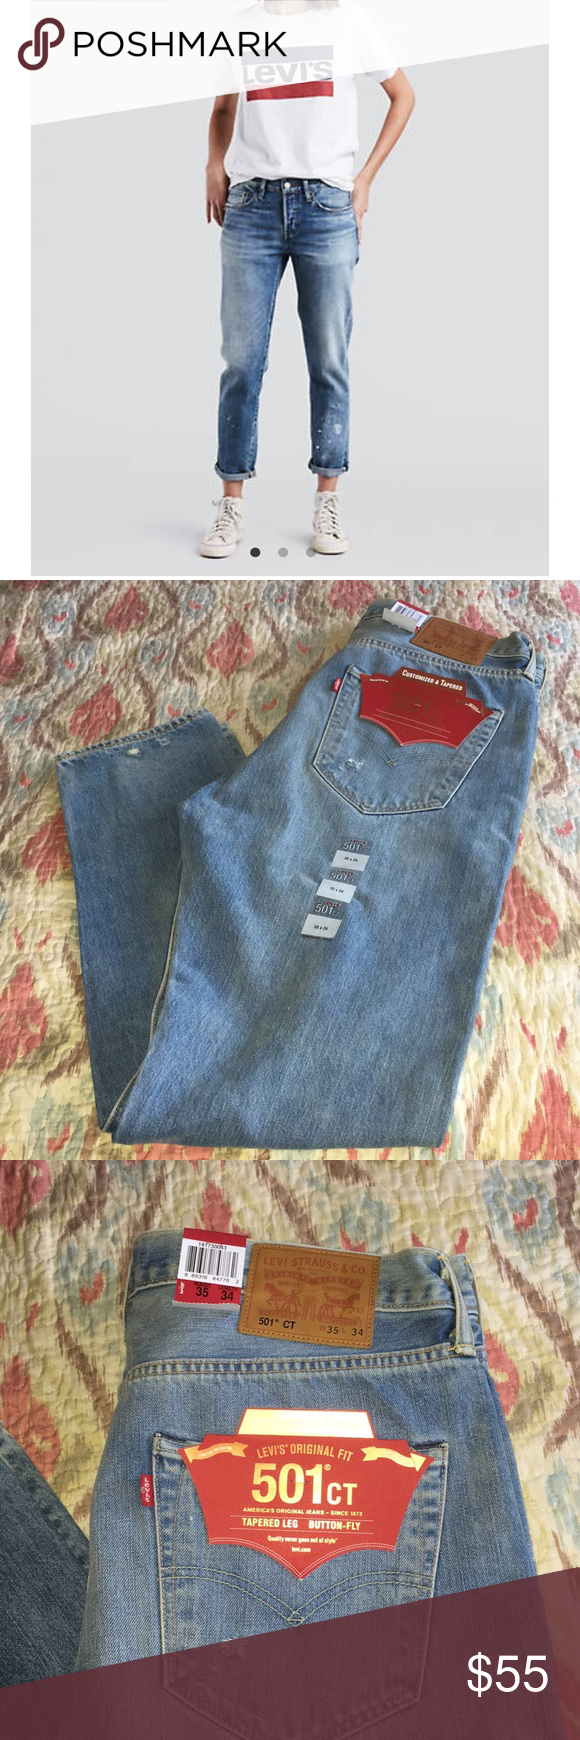 8dd507e2 LEVI'S ORIGINAL FIT 501ct CUSTOMIZED & TAPERED BUTTON FLY DISTRESSED JEANS  W 35 L 34 NWT IN EXCELLENT CONDITION GREAT BUY Levi's Pants